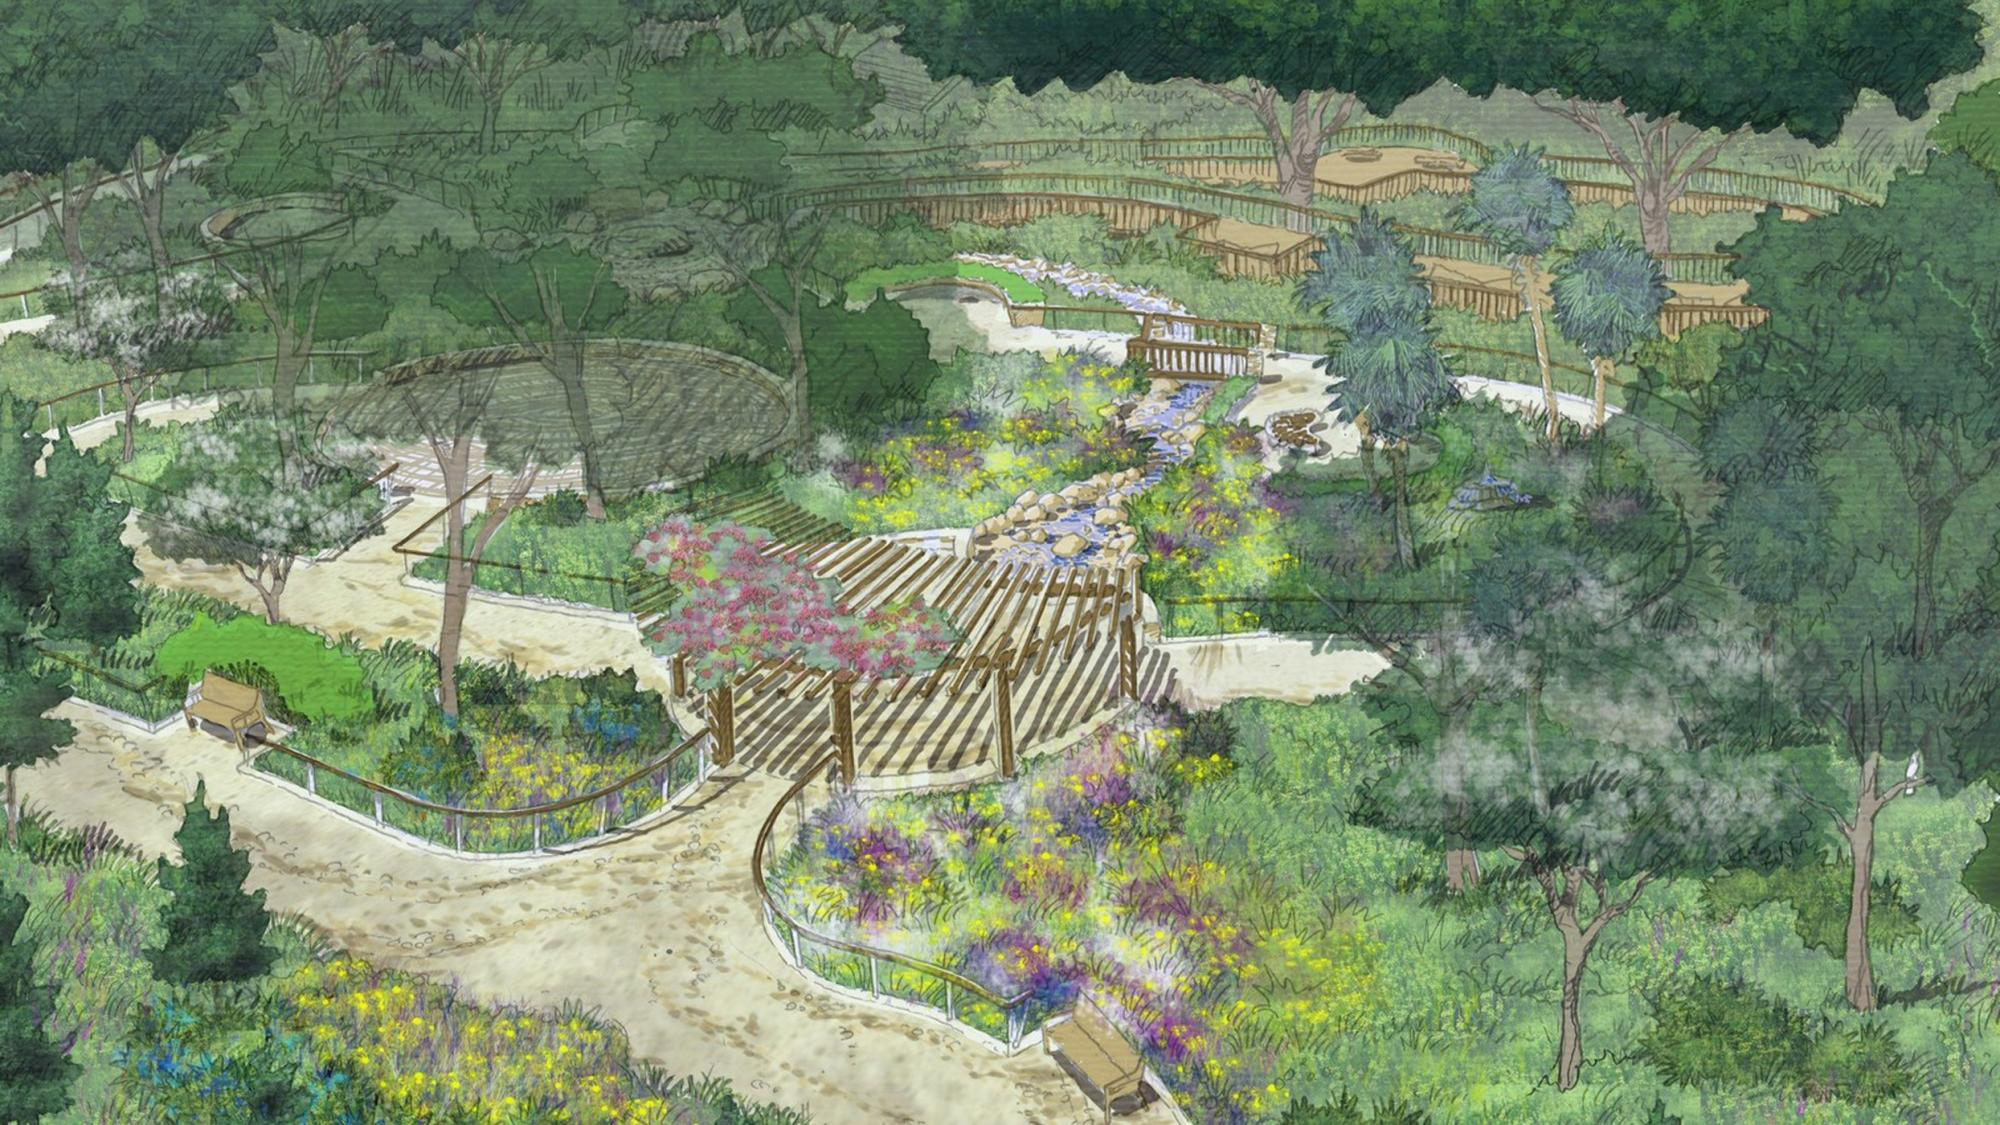 Adu Helps Develop Serenity Garden At Wekiwa Springs State Park